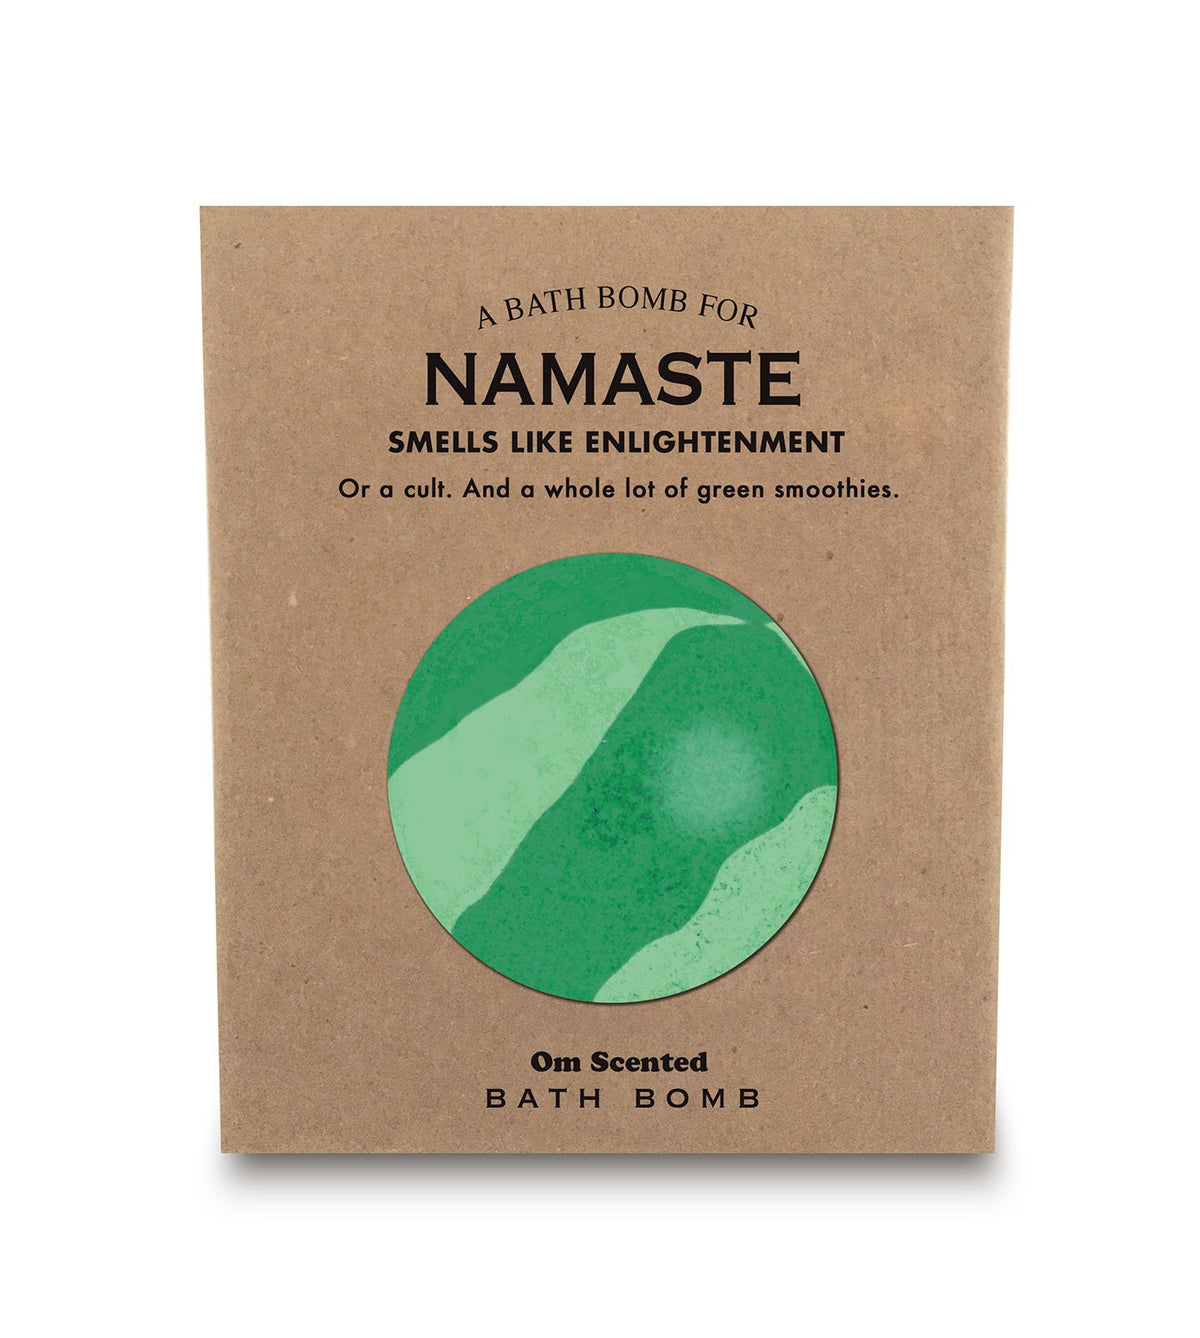 A Bath Bomb for Namaste - Heart of the Home PA